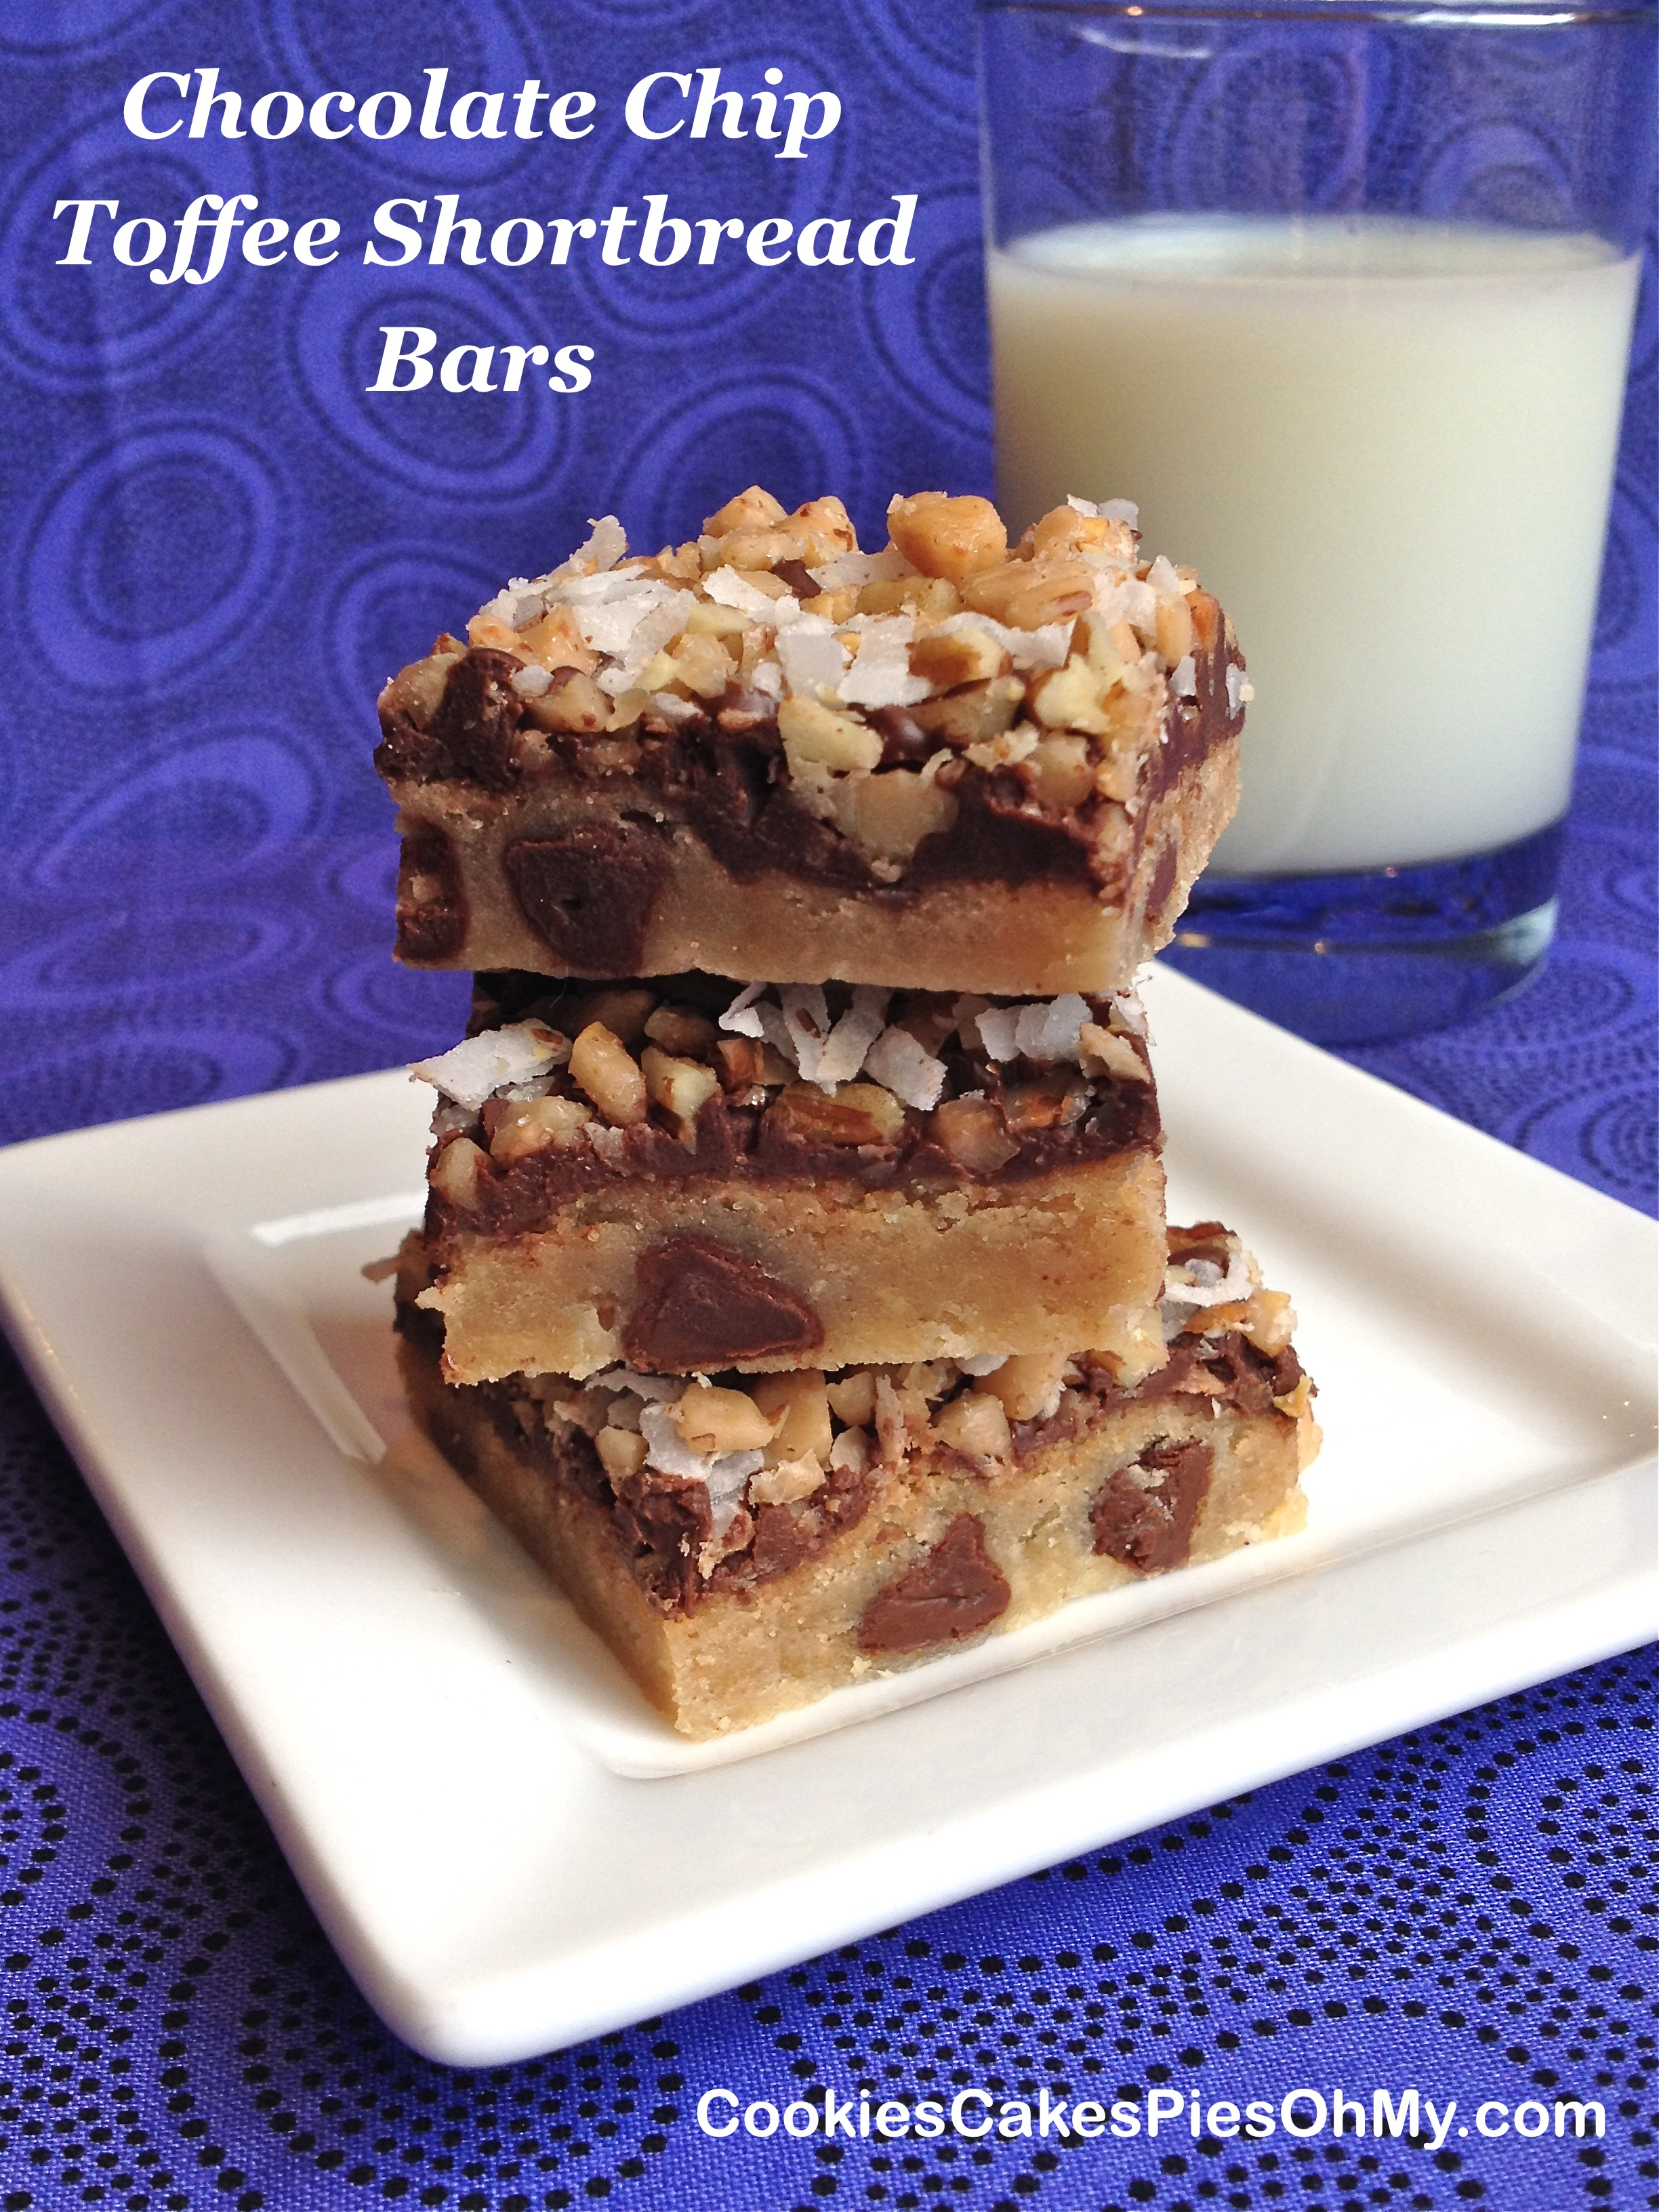 Chocolate Chip Toffee Shortbread Bars | CookiesCakesPiesOhMy